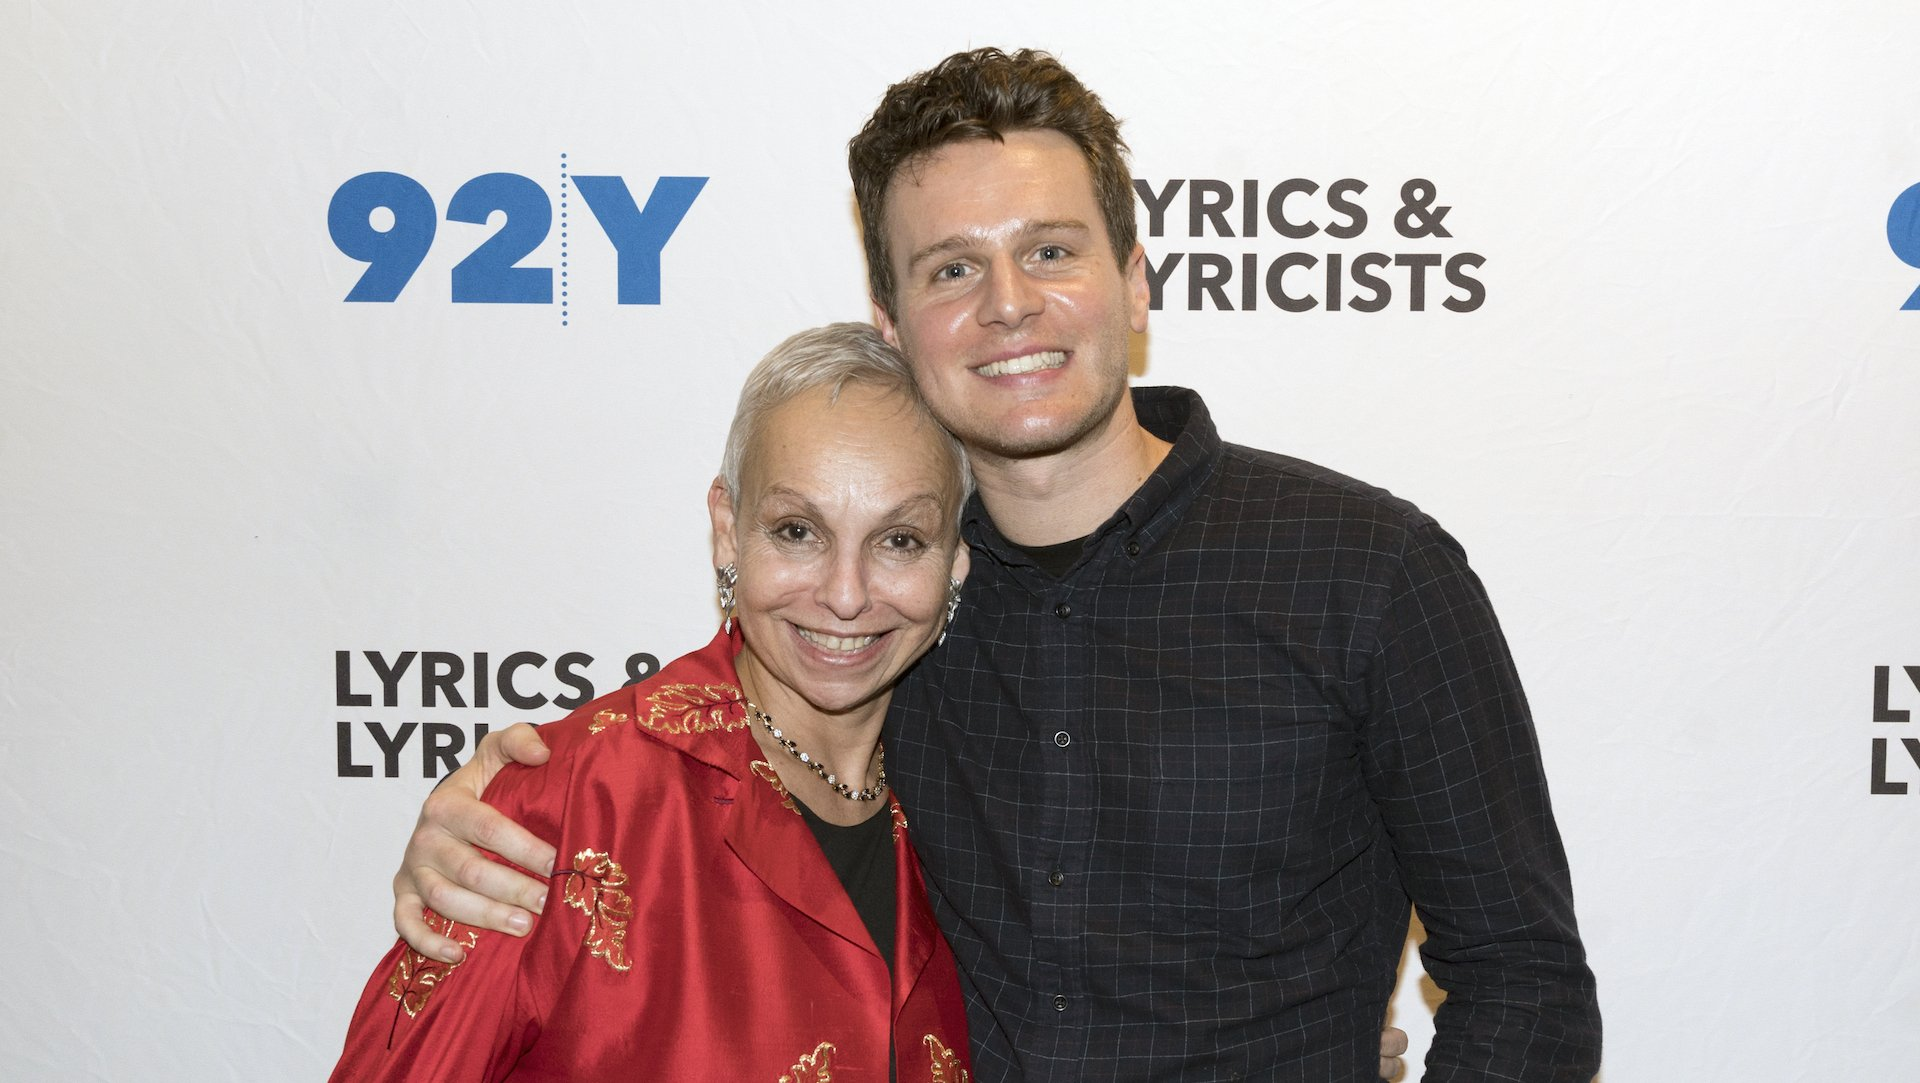 Happy birthday to the amazing Jonathan Groff. Can\t wait to have you back again soon.